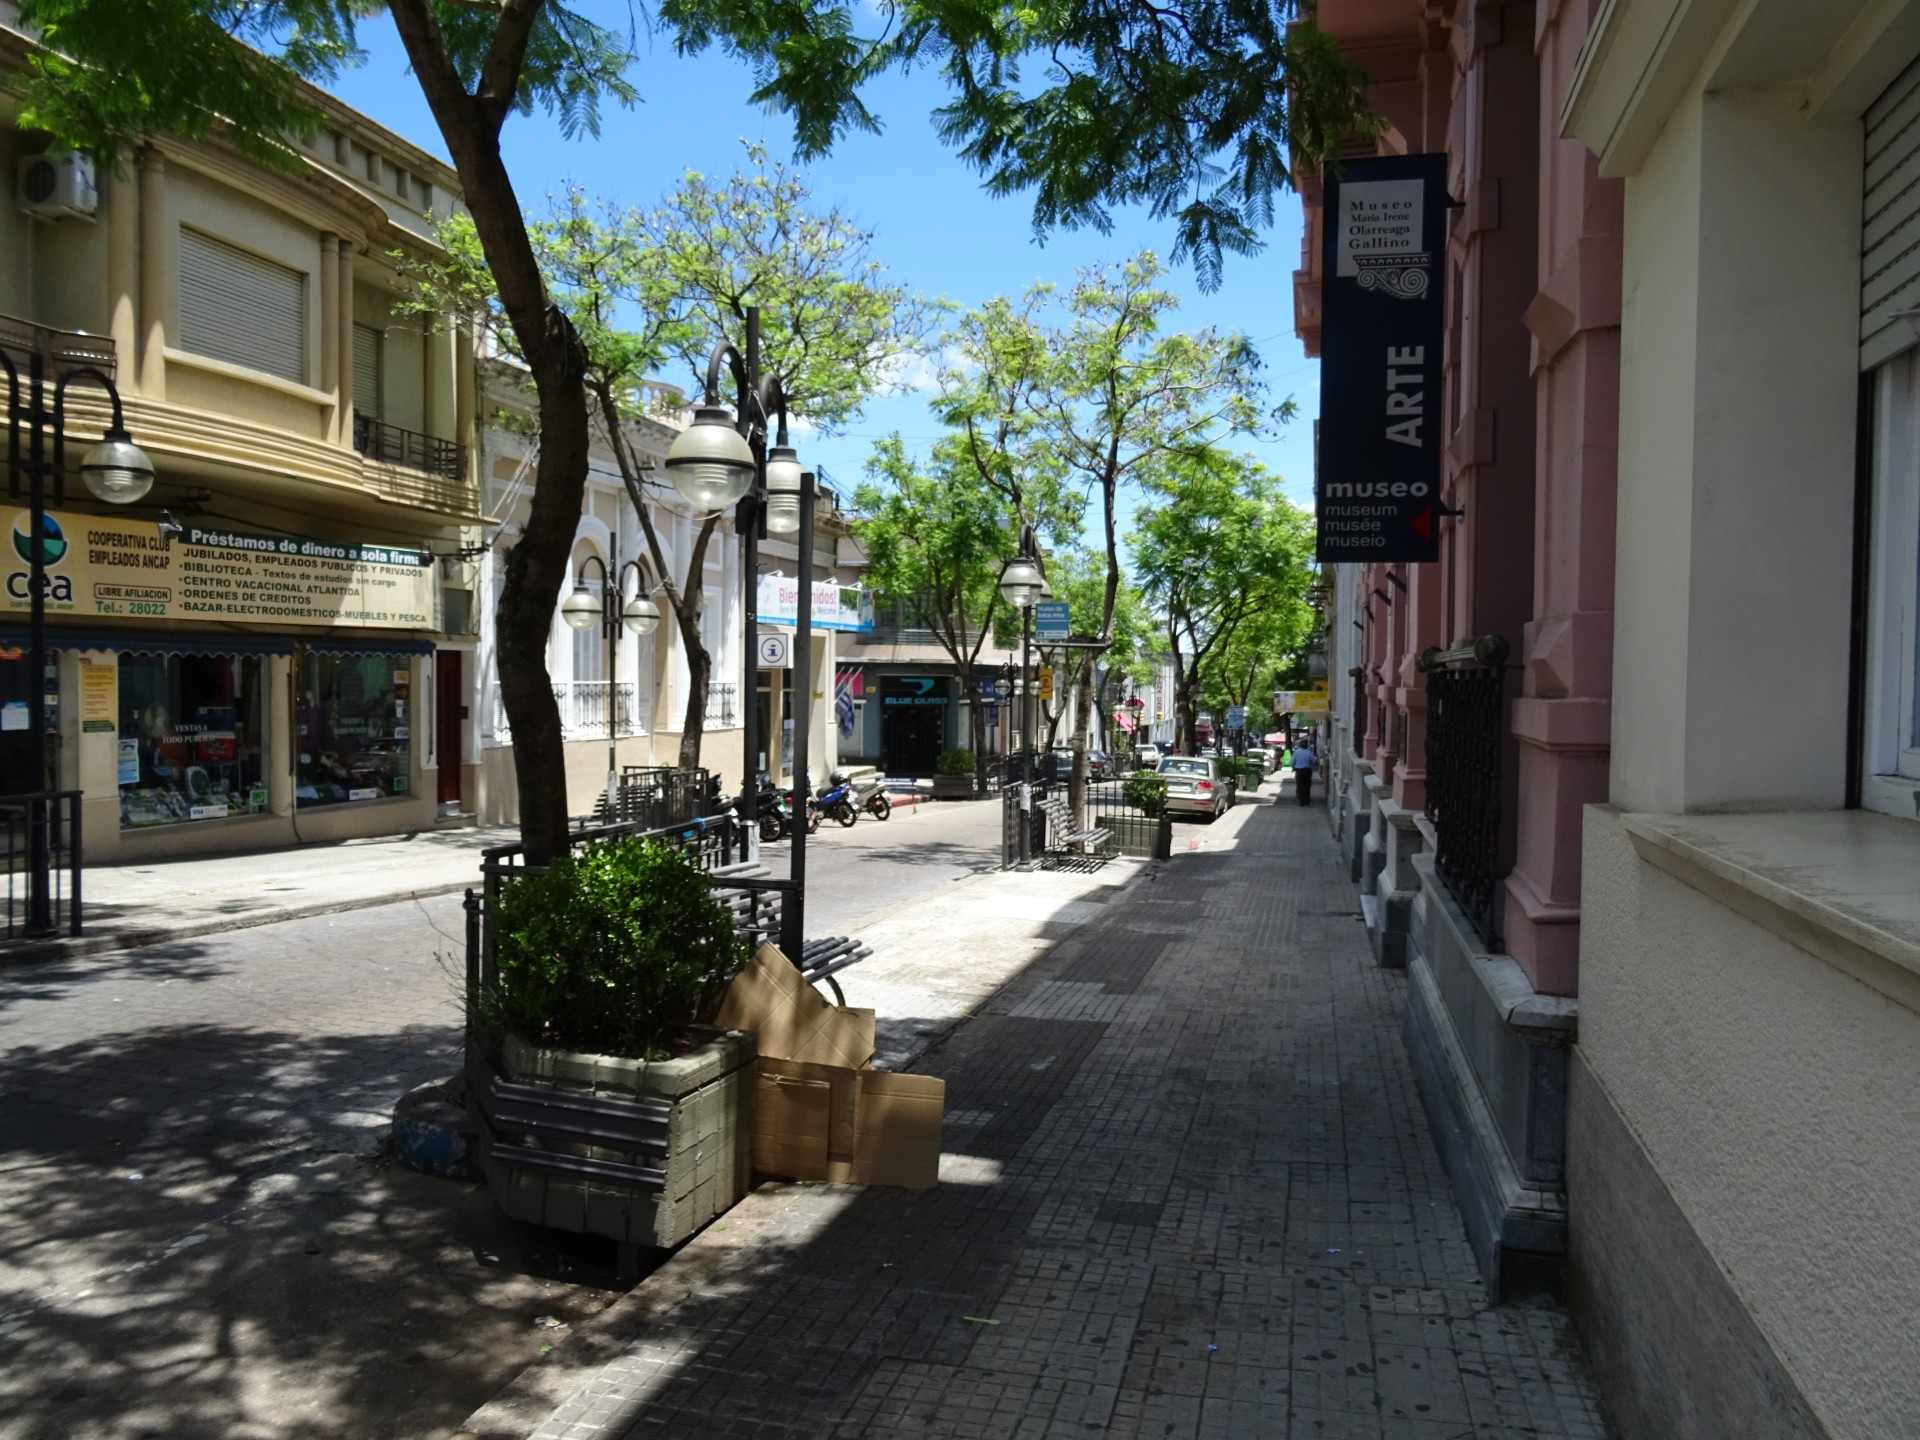 Perfectly nice looking streets in Salto.